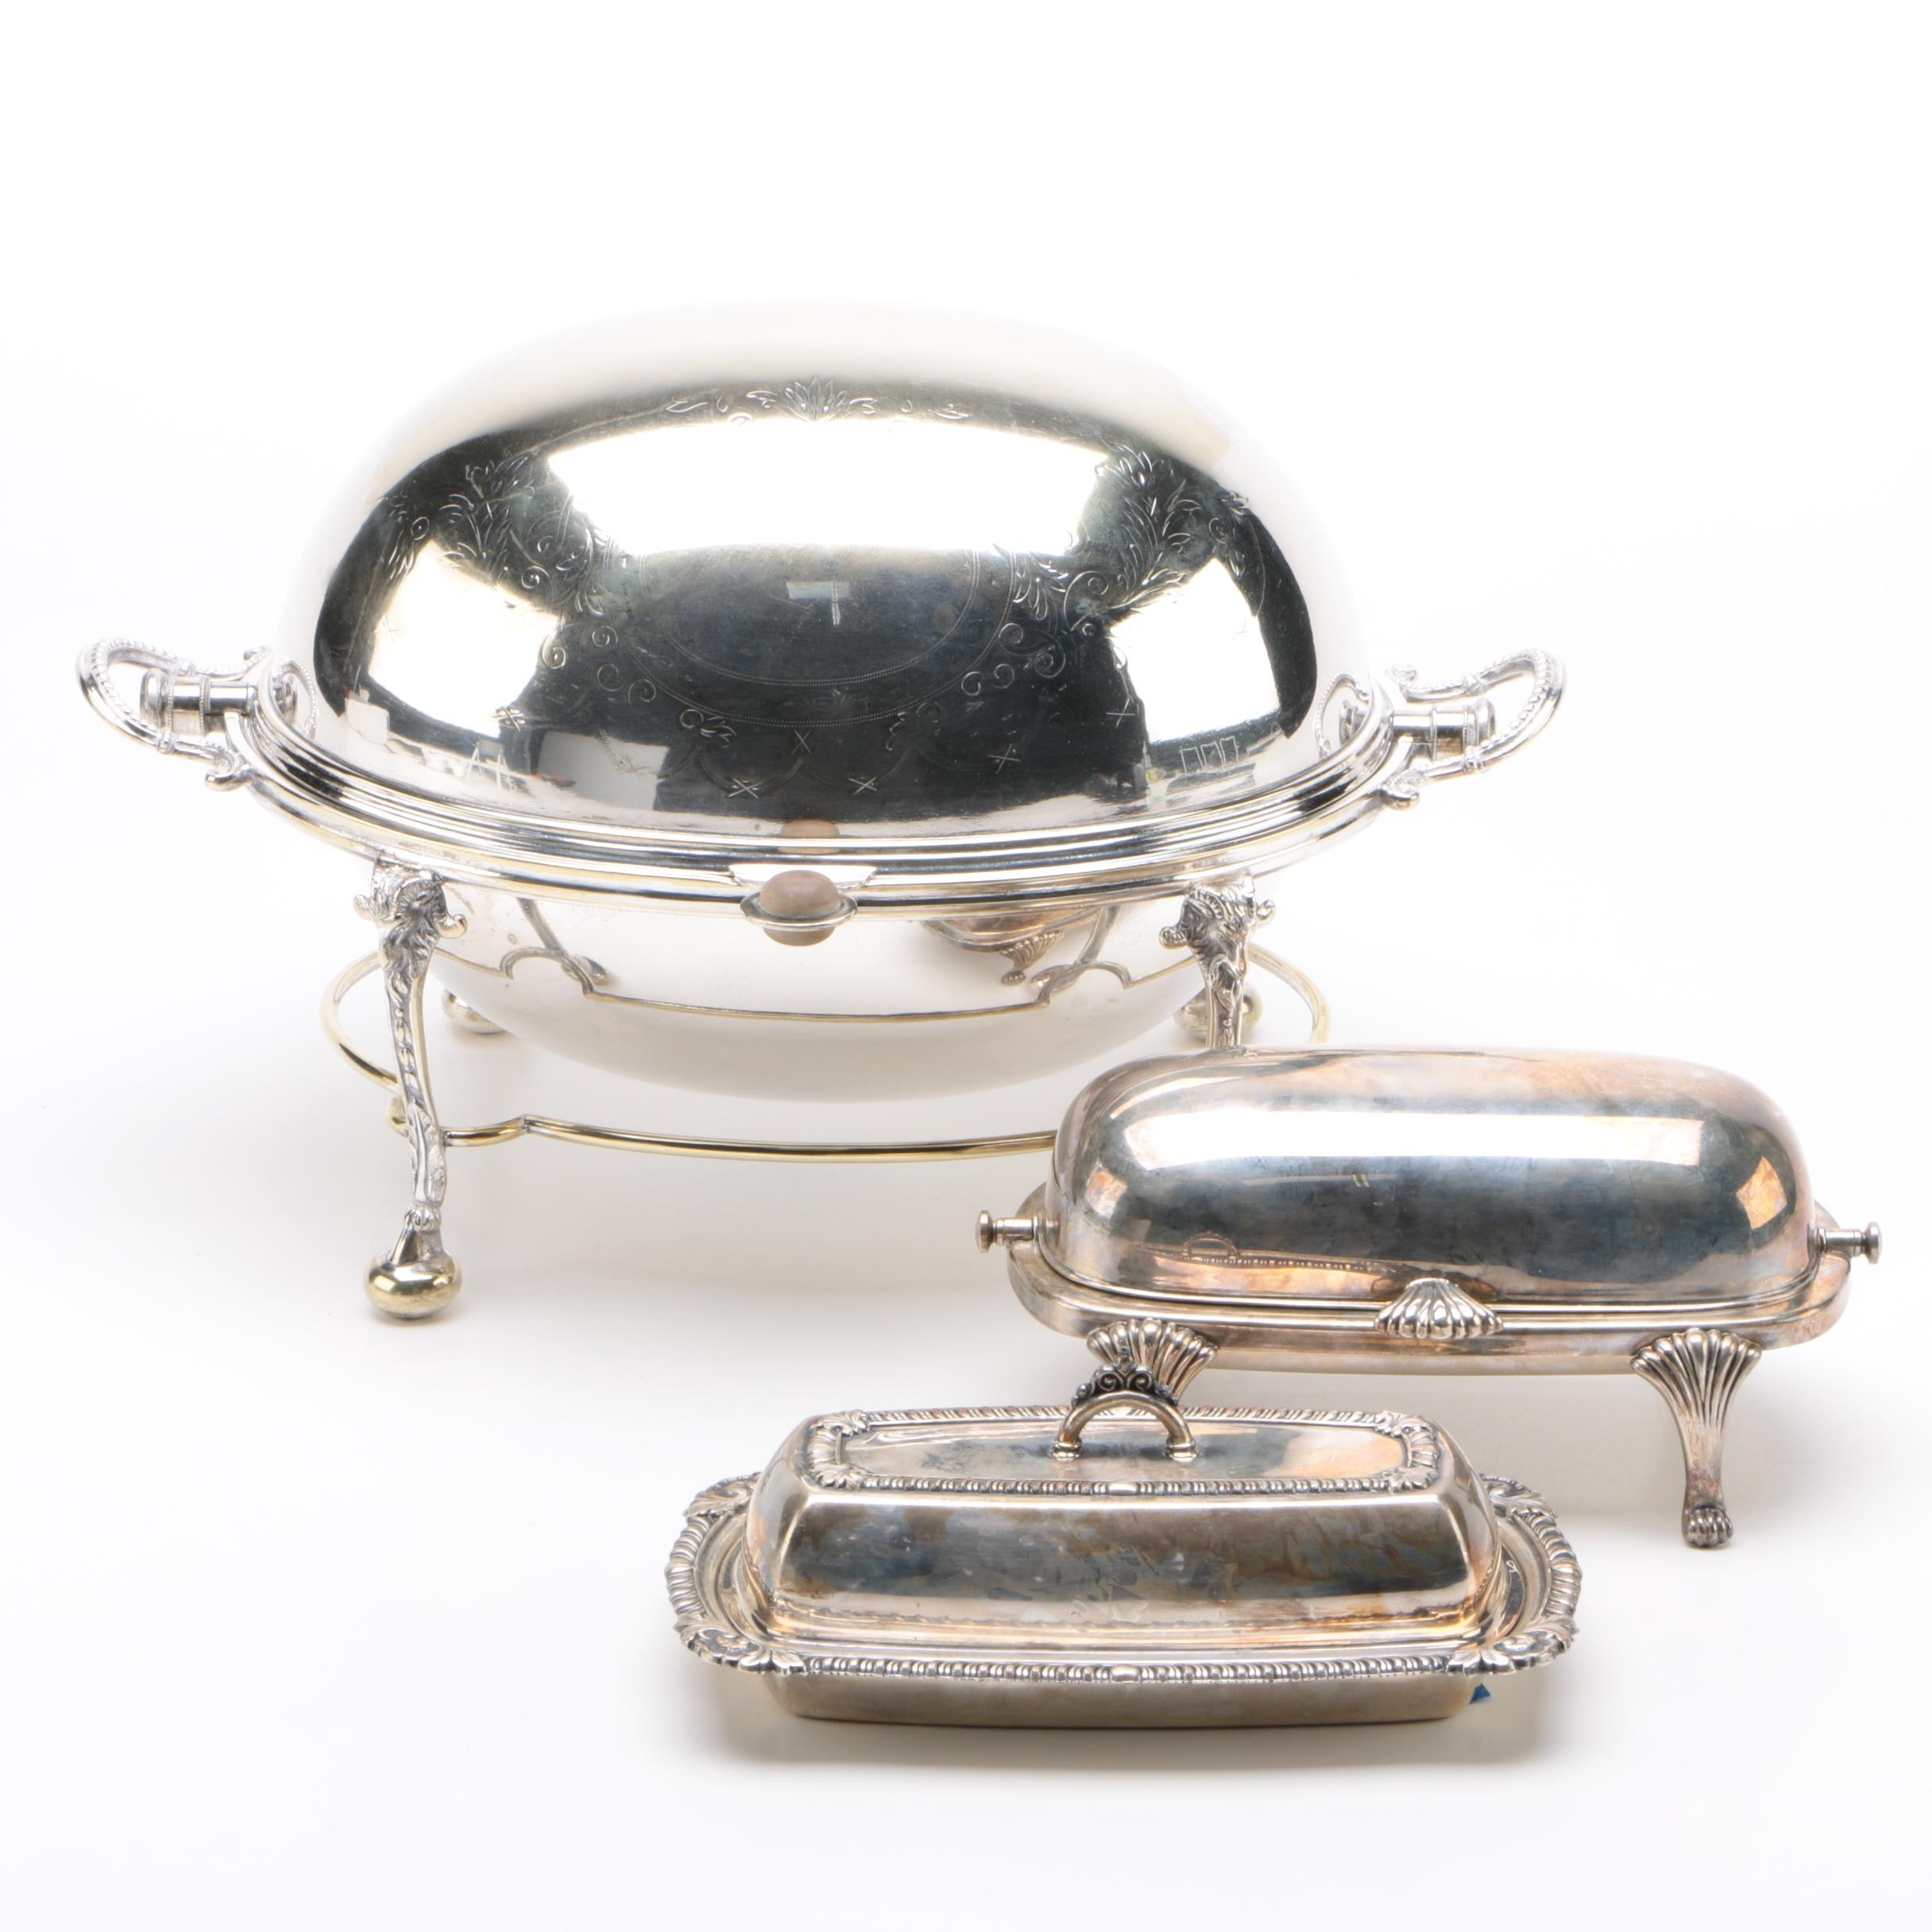 Hukin & Heath Silver Plate Breakfast Dish with American Butter Dishes